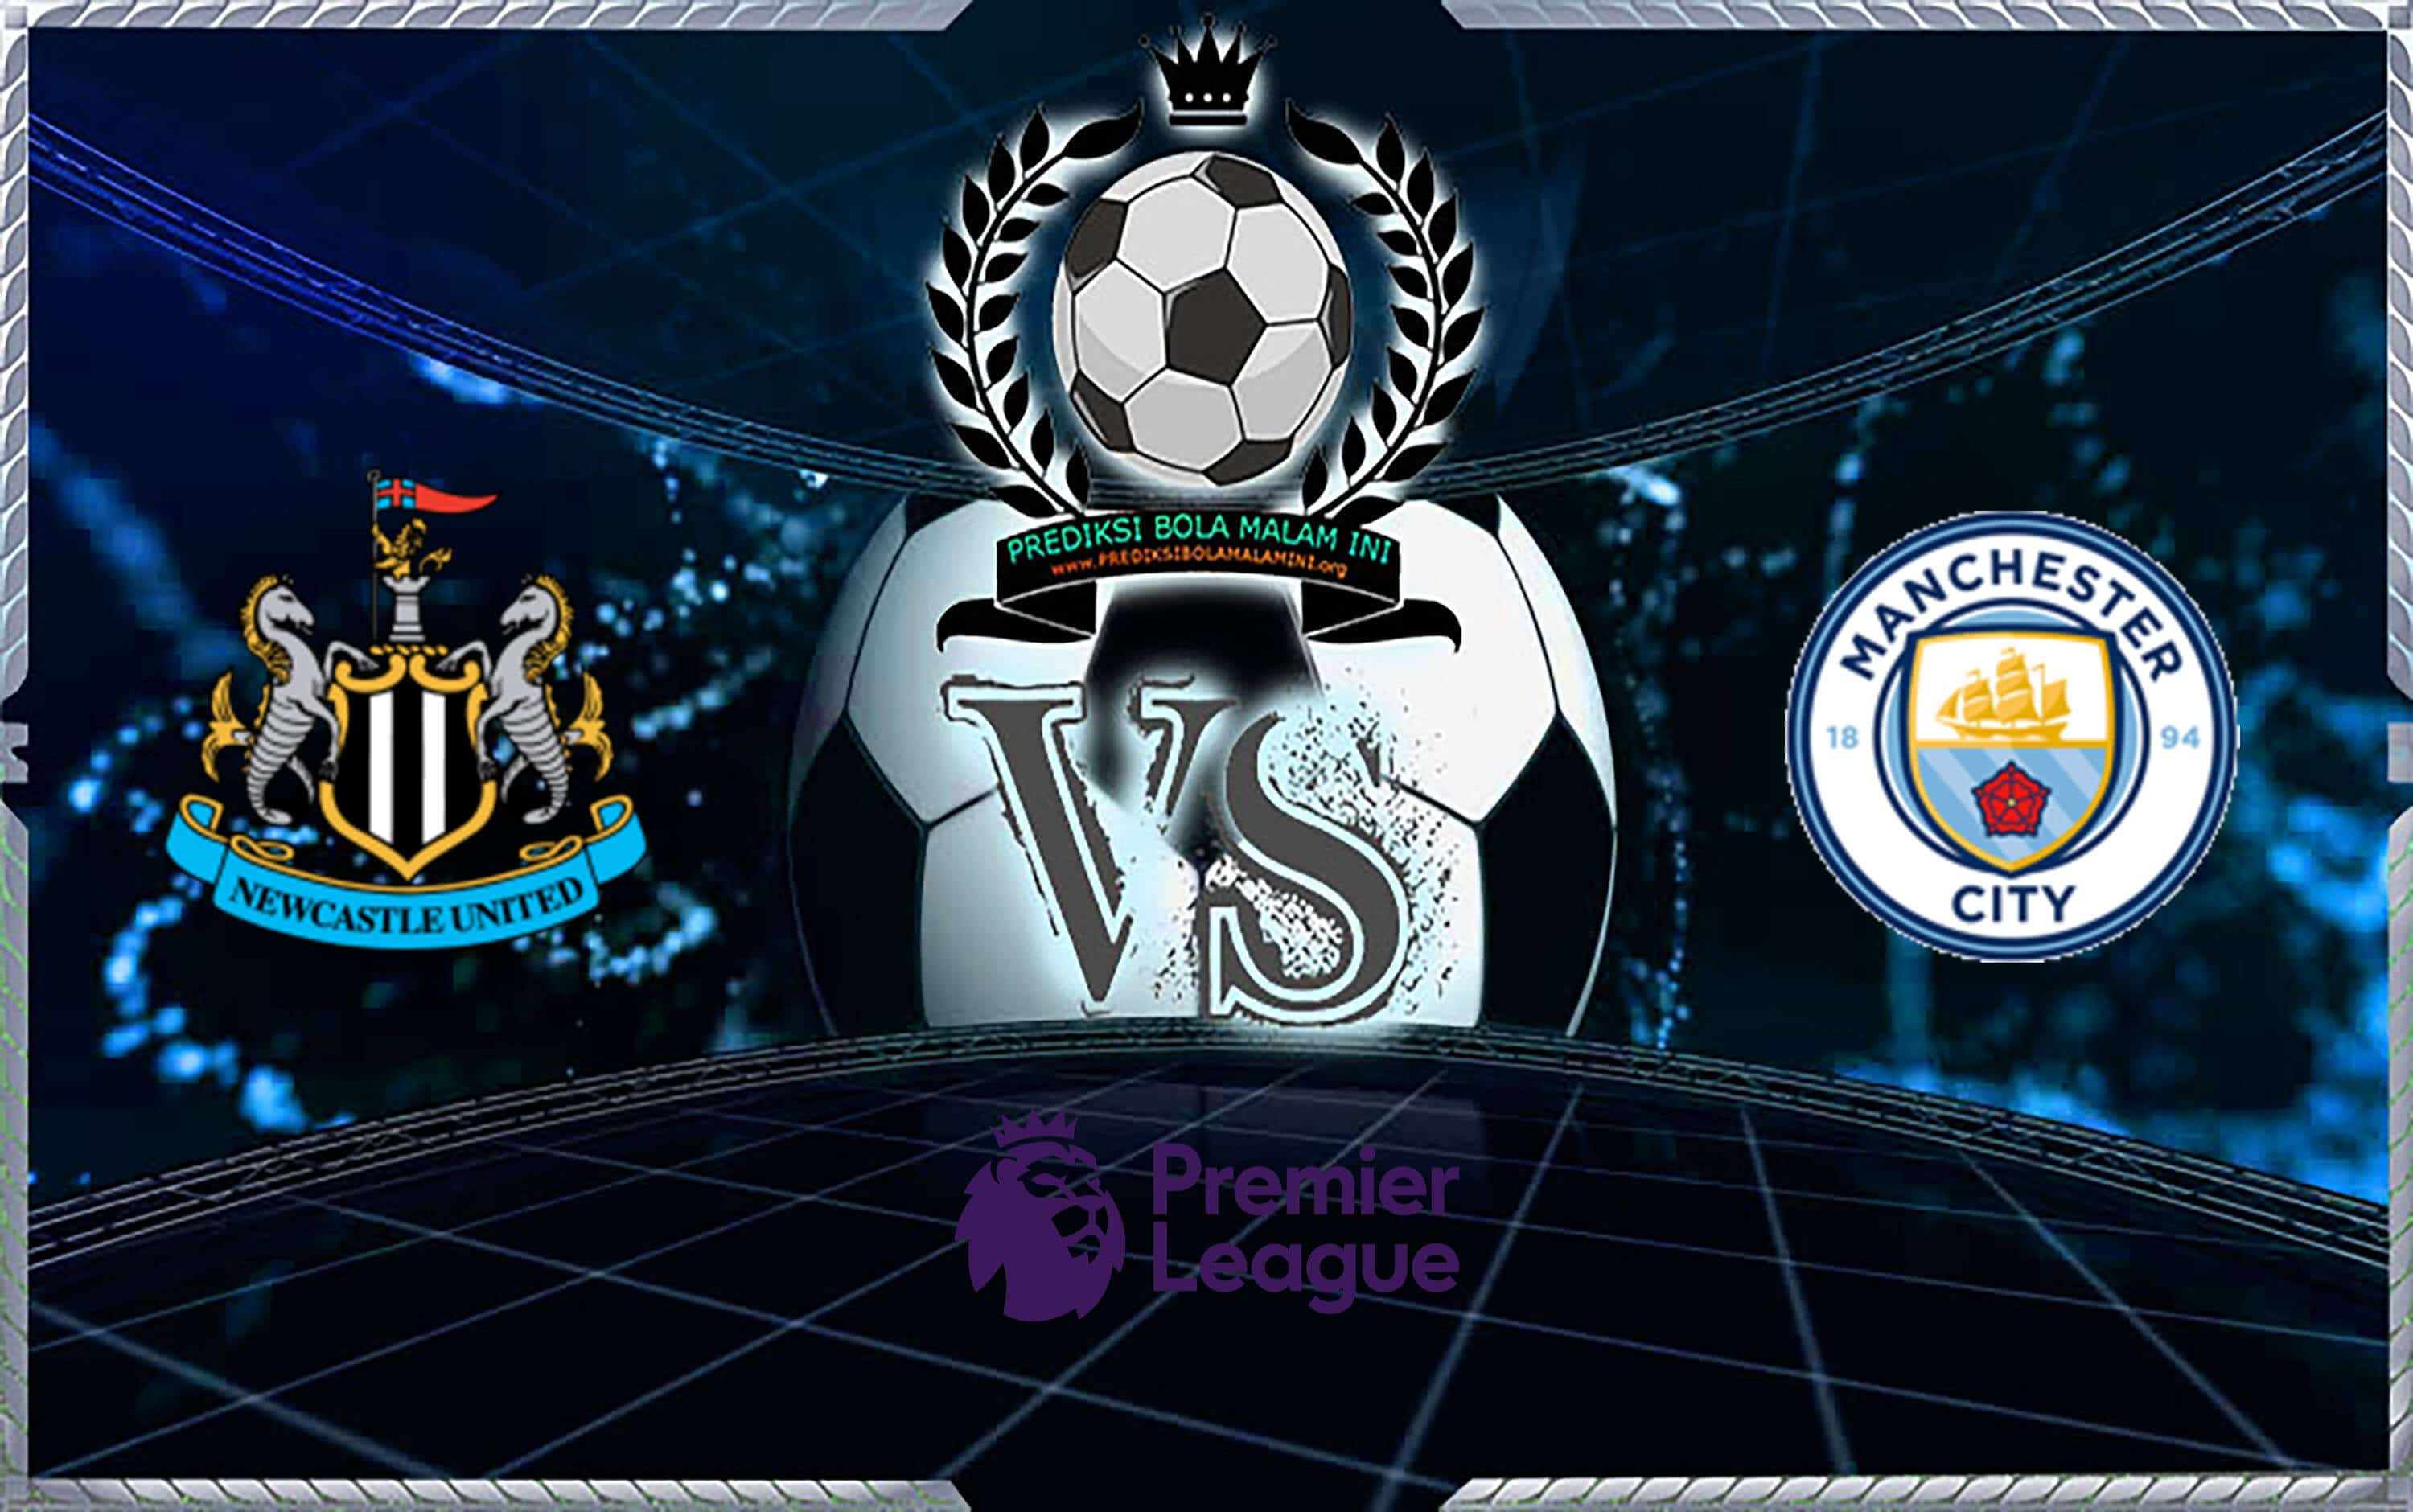 "Sepatu Prediksi Newcastle United Vs Manchester City FC 30 November 2019 ""width ="" 3000 ""height ="" 1880 ""/> </strong> </p> <p> <span style="